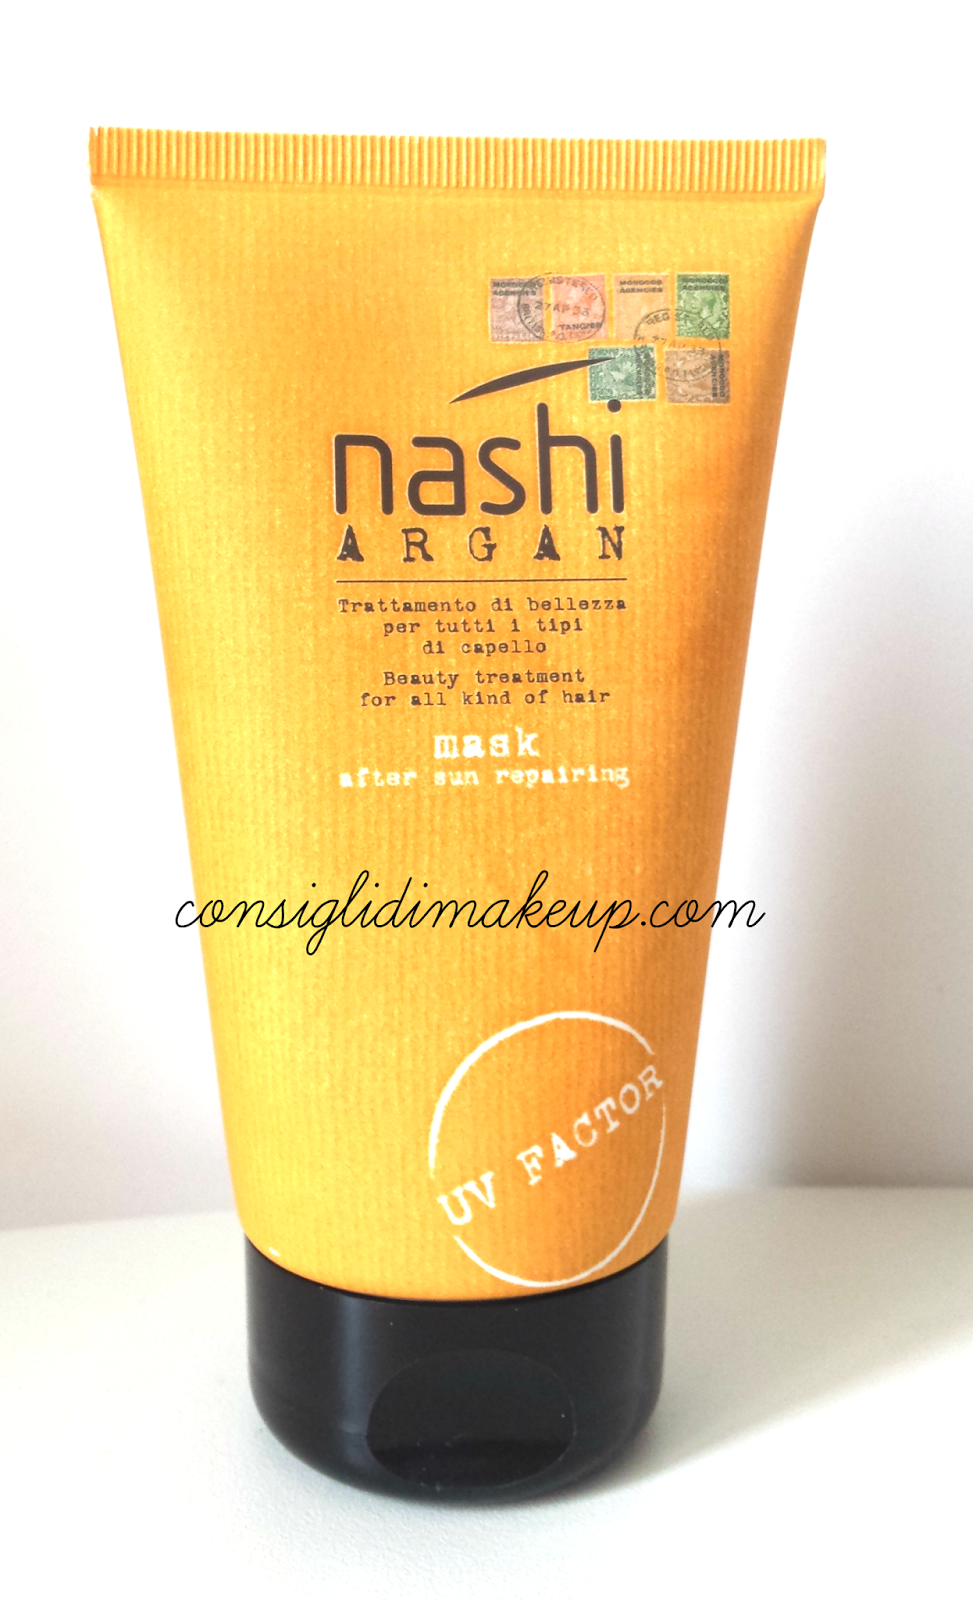 Review: After Sun Repairing Mask - Nashi Argan